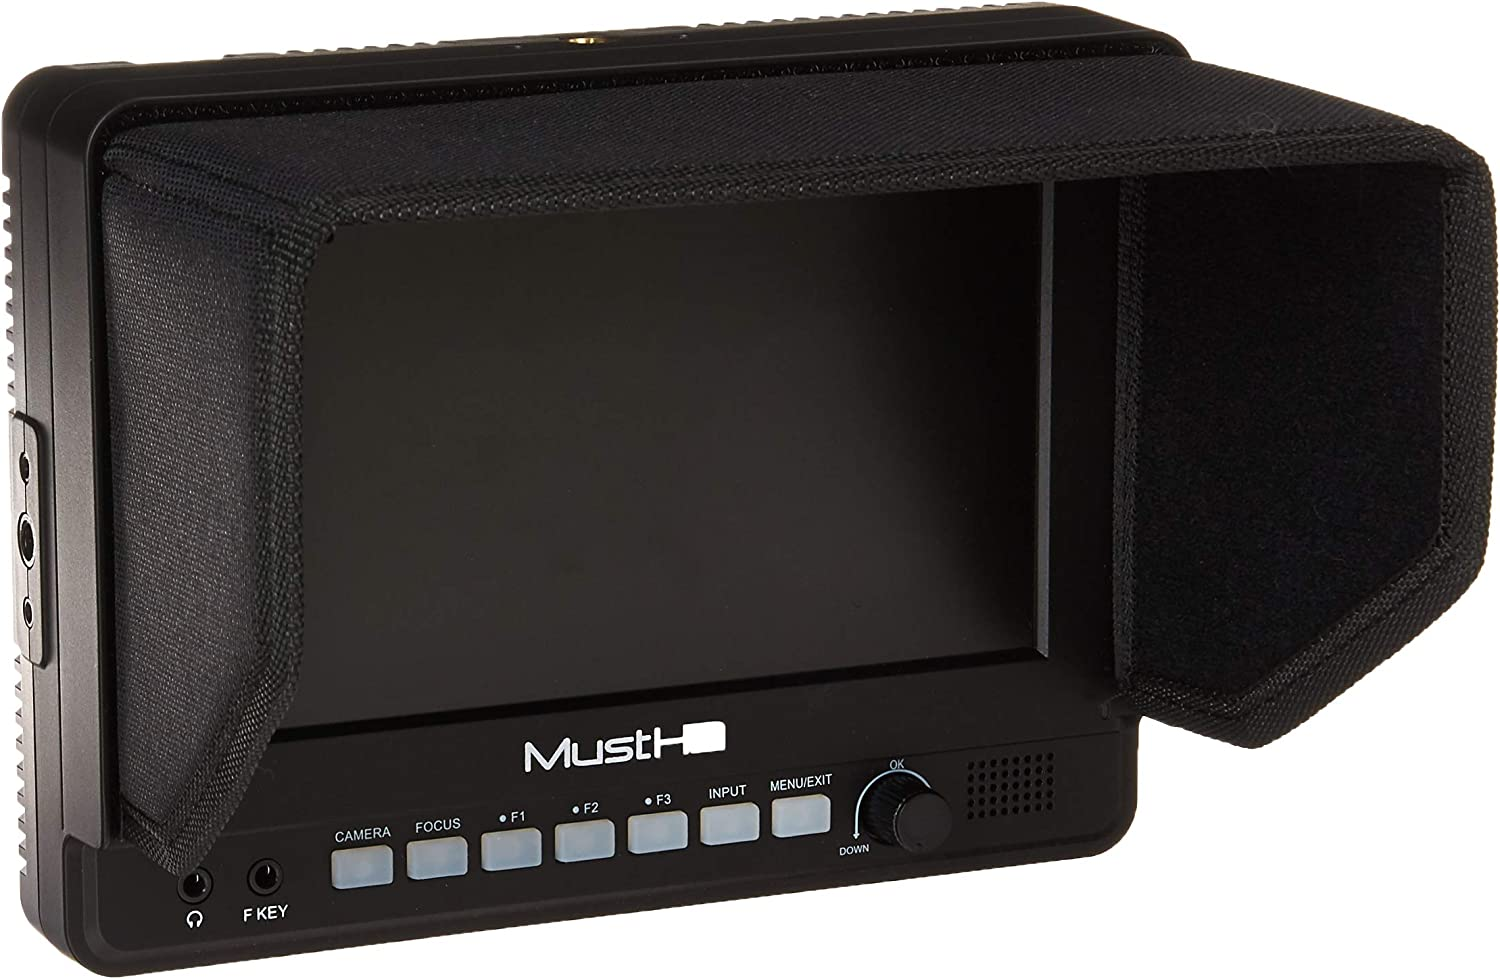 Support 1080P MustHD M700H 7-Inch IPS On-Camera Field Monitor with HDMI in and Out